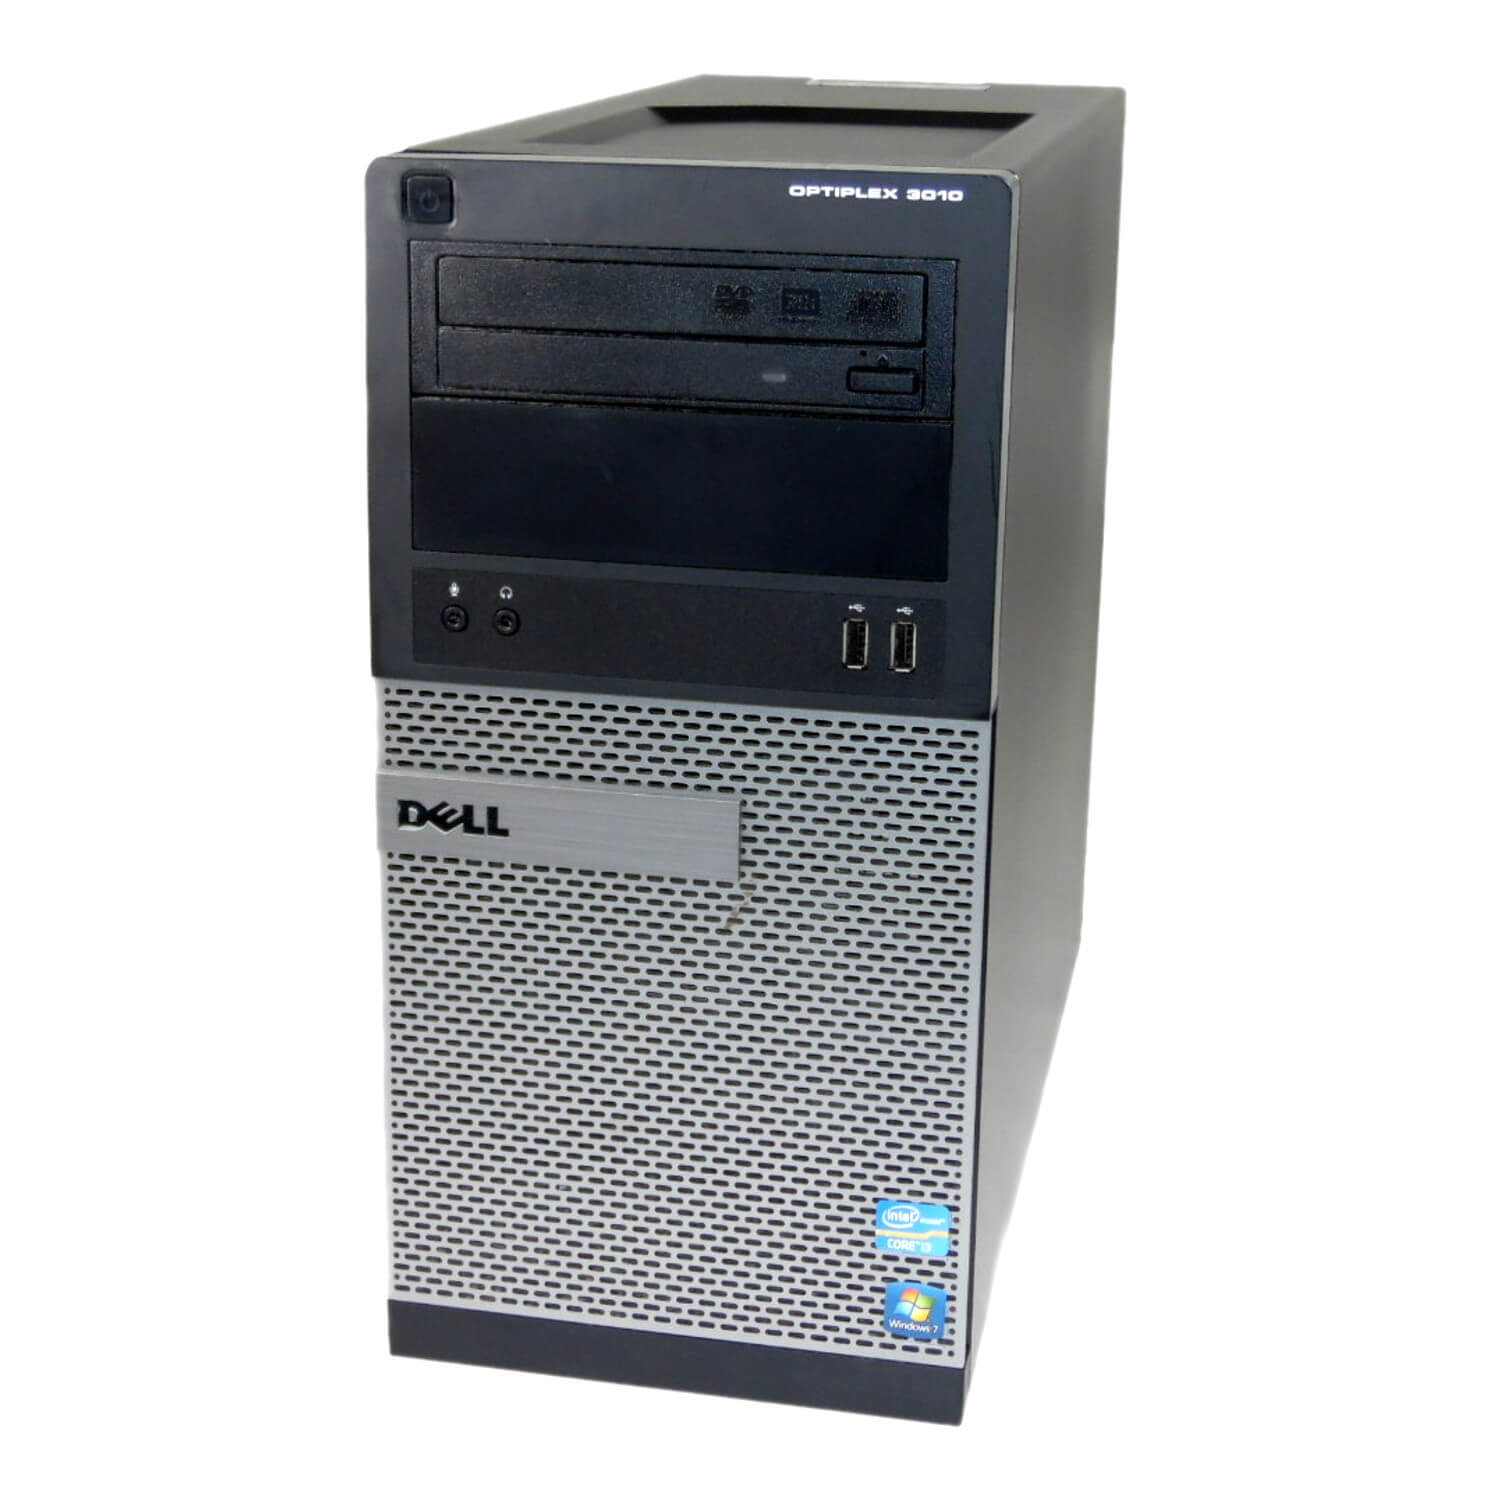 DELL 3010 TOWER I3-3220 3,3 / 4096 MB DDR3 / 500 GB / DVD-RW / WINDOWS 10 HOME